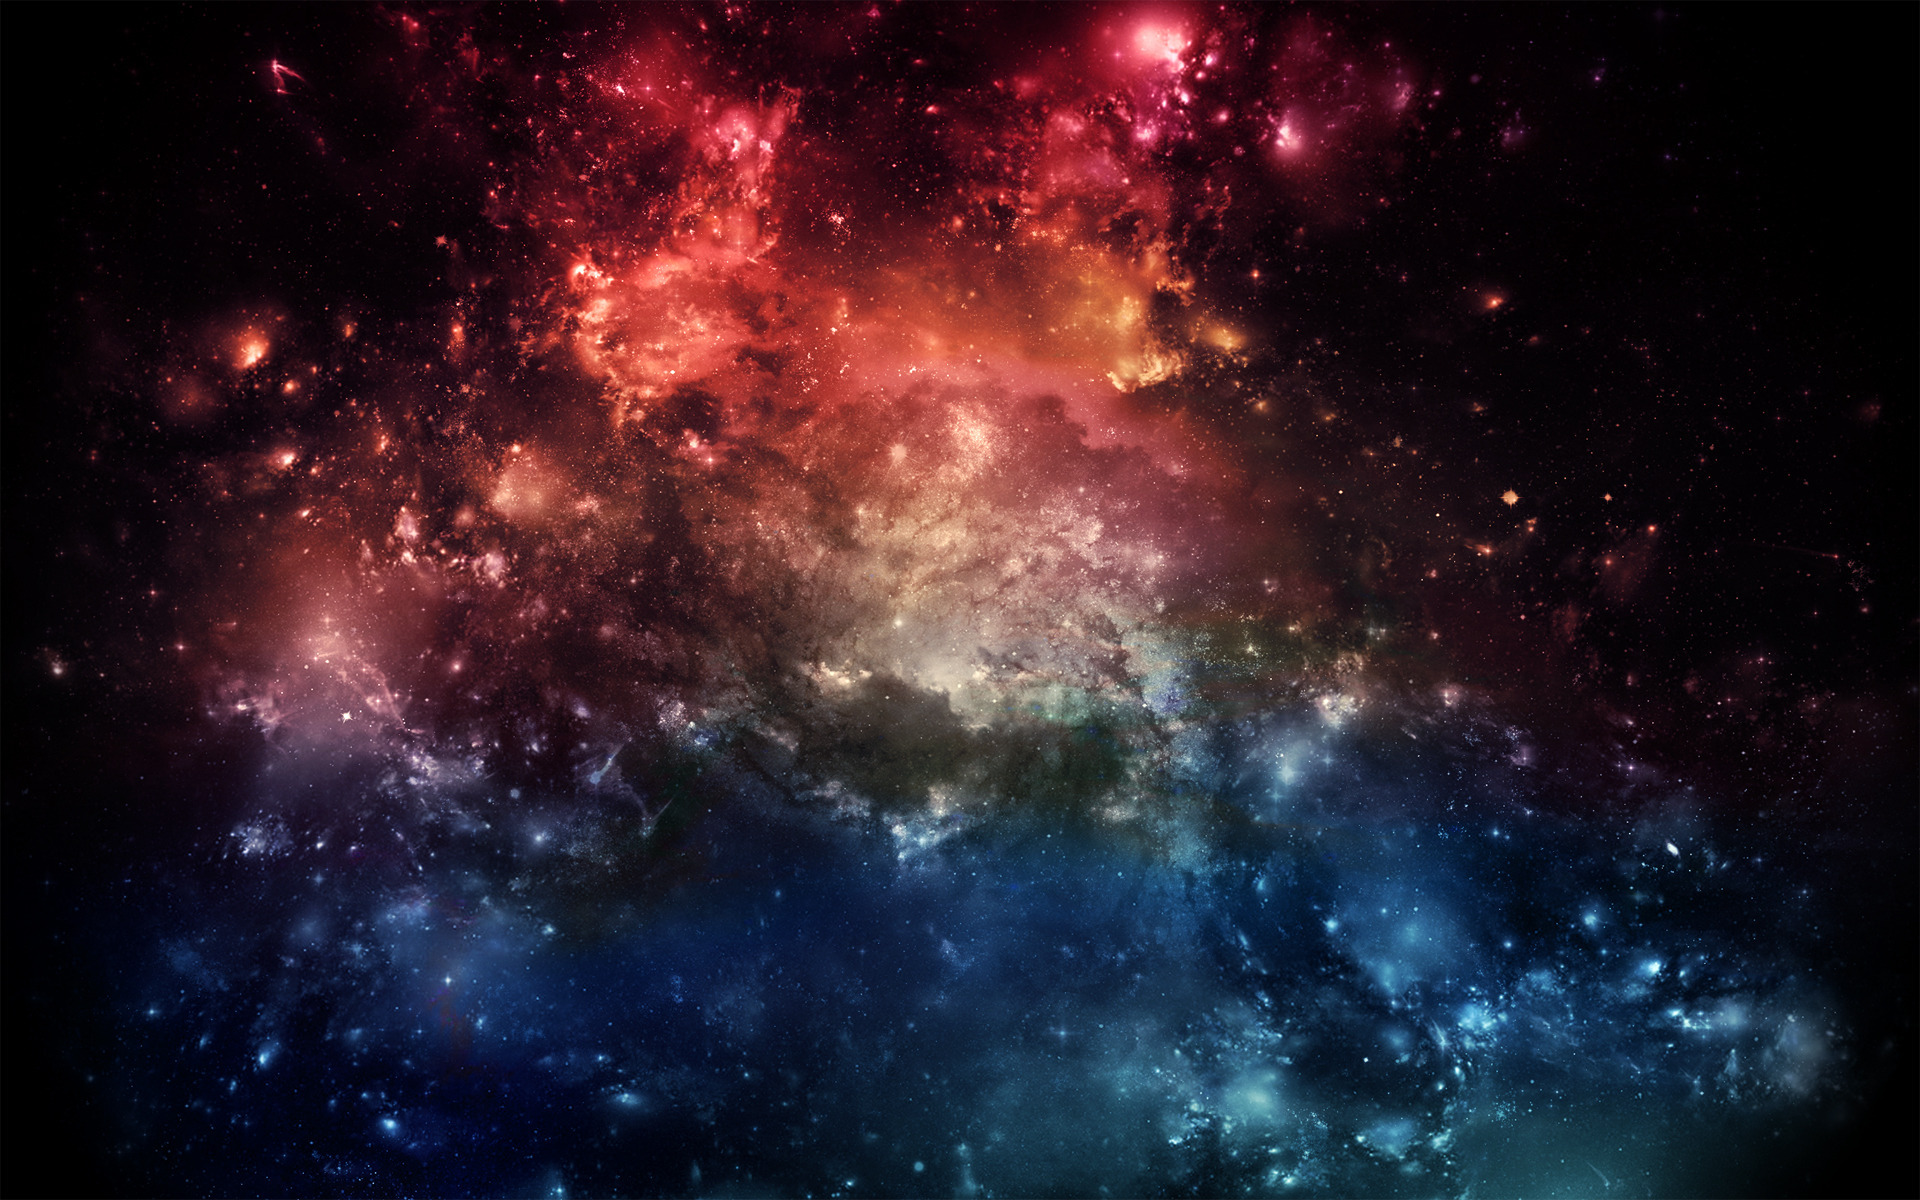 Galaxy Wallpapers 19201200 For Desktop 1920x1200